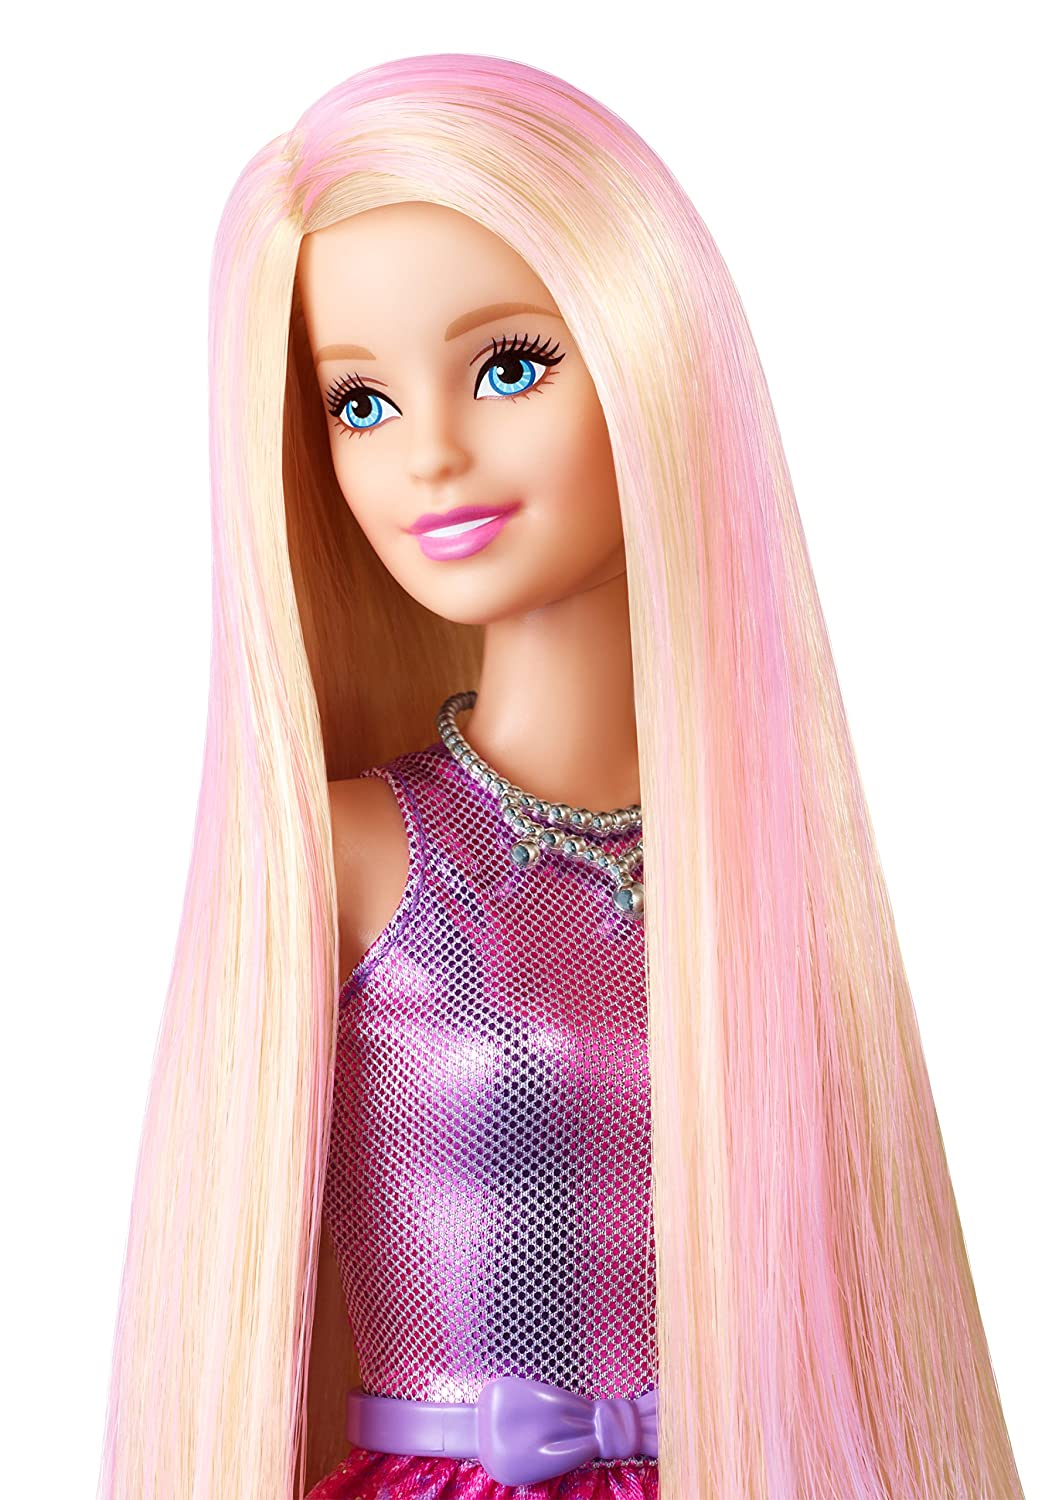 Cute Hairstyles For Barbie Dolls -